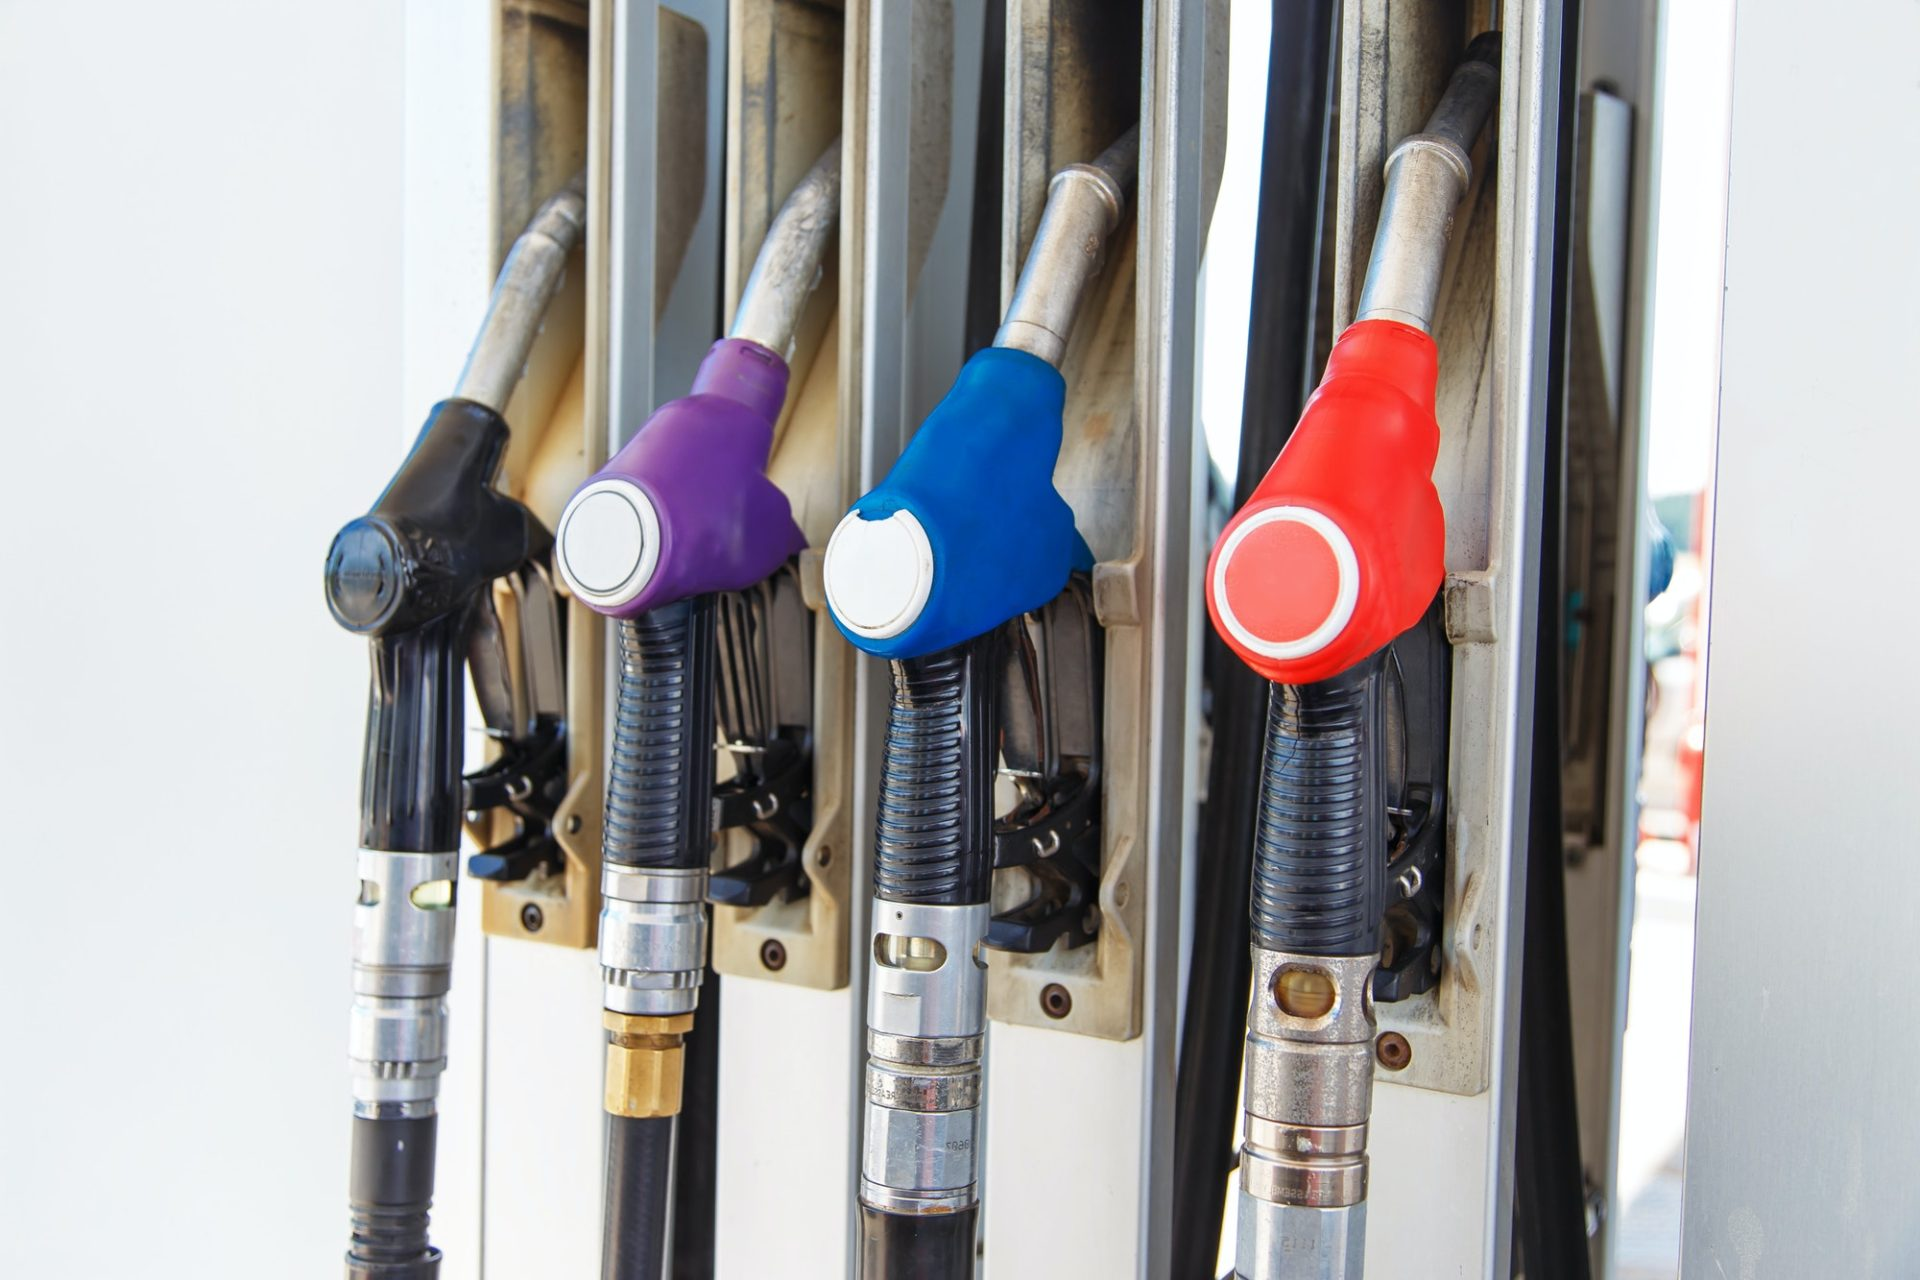 Fuel nozzle dispensing pump at gas station. The fuel for transportation concept.